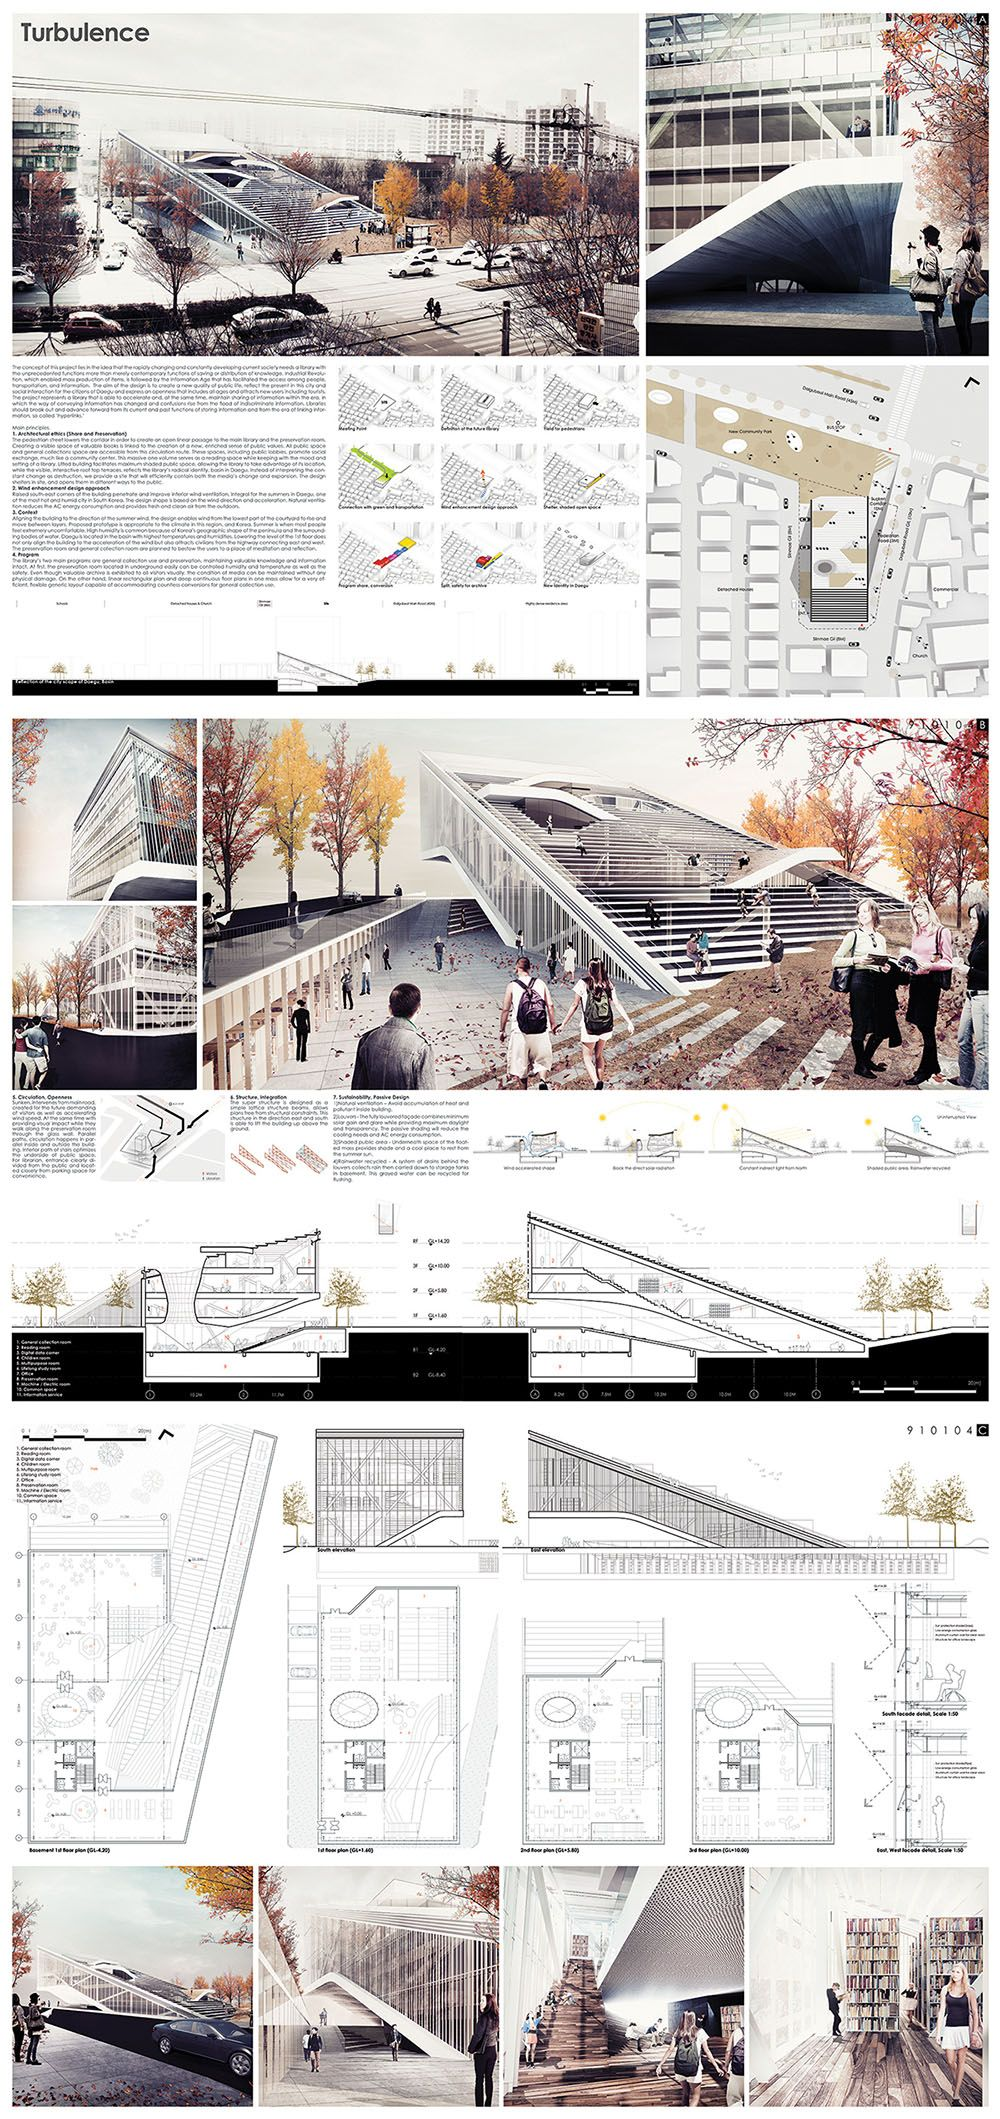 2012 International Architectural Competition for a Public